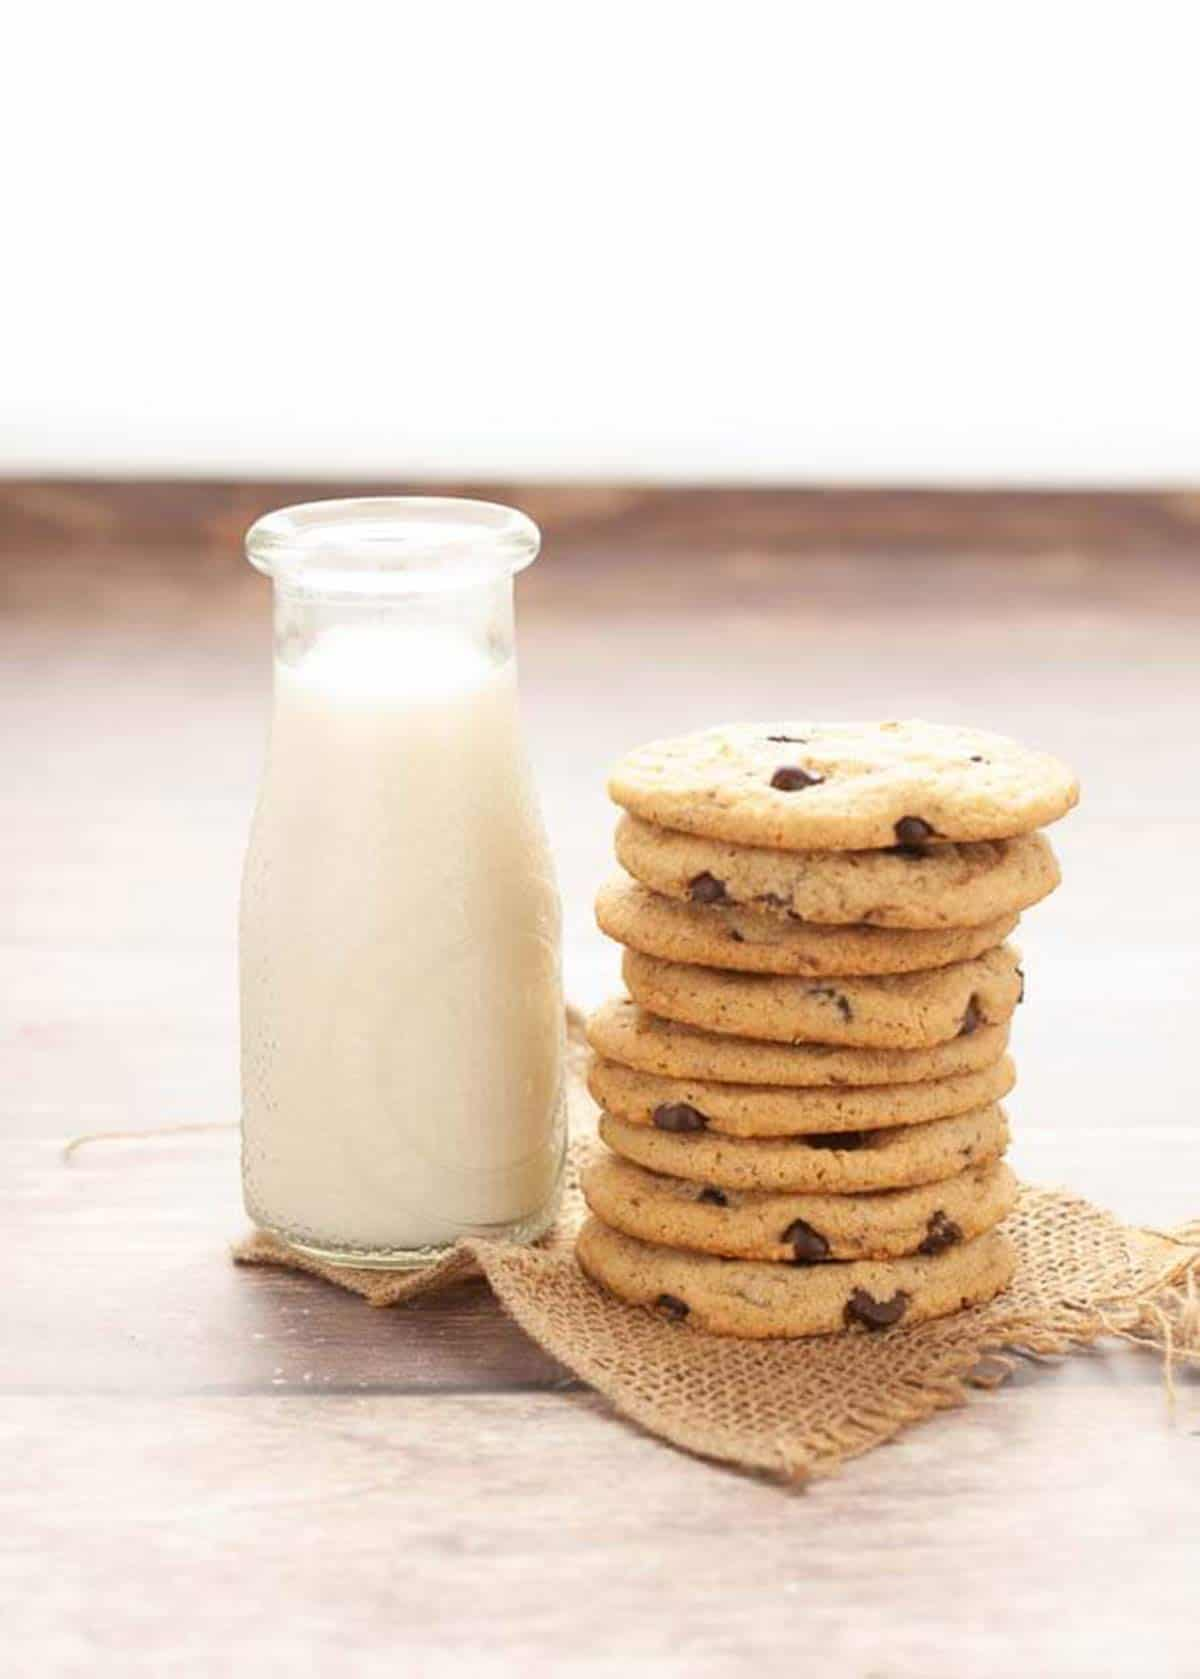 stack of cookies next to glass of milk